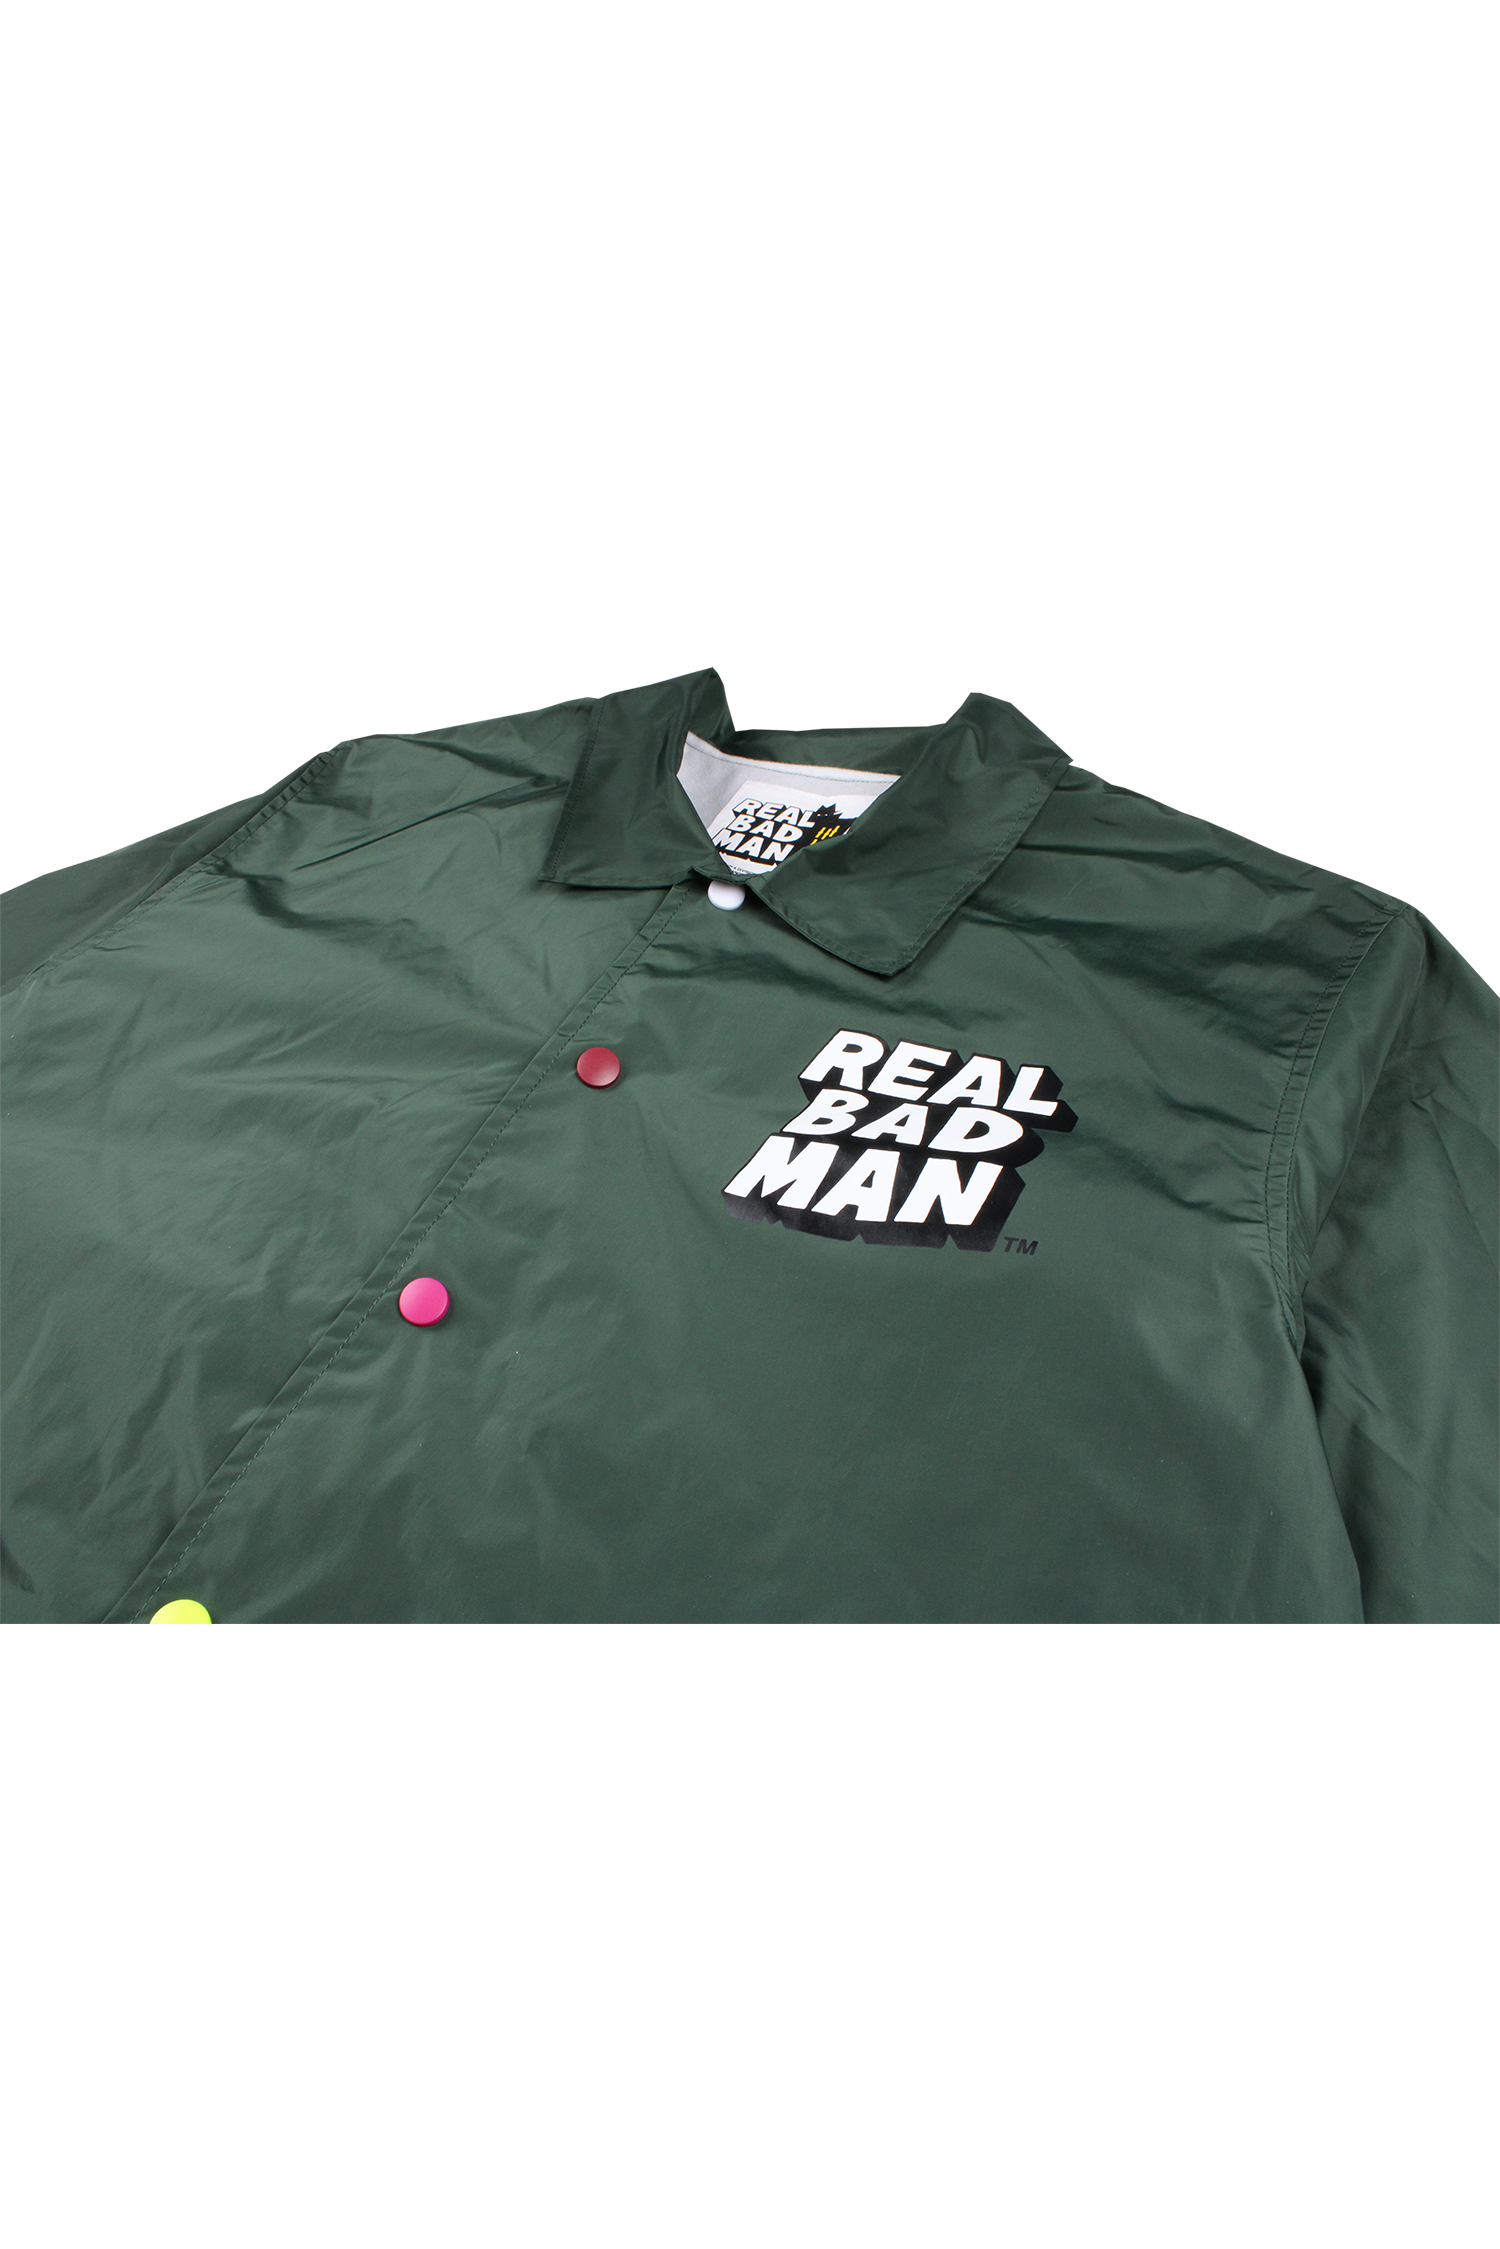 REAL BAD MAN M'S CASUAL JACKETS FLIPPED COACHES JACKET